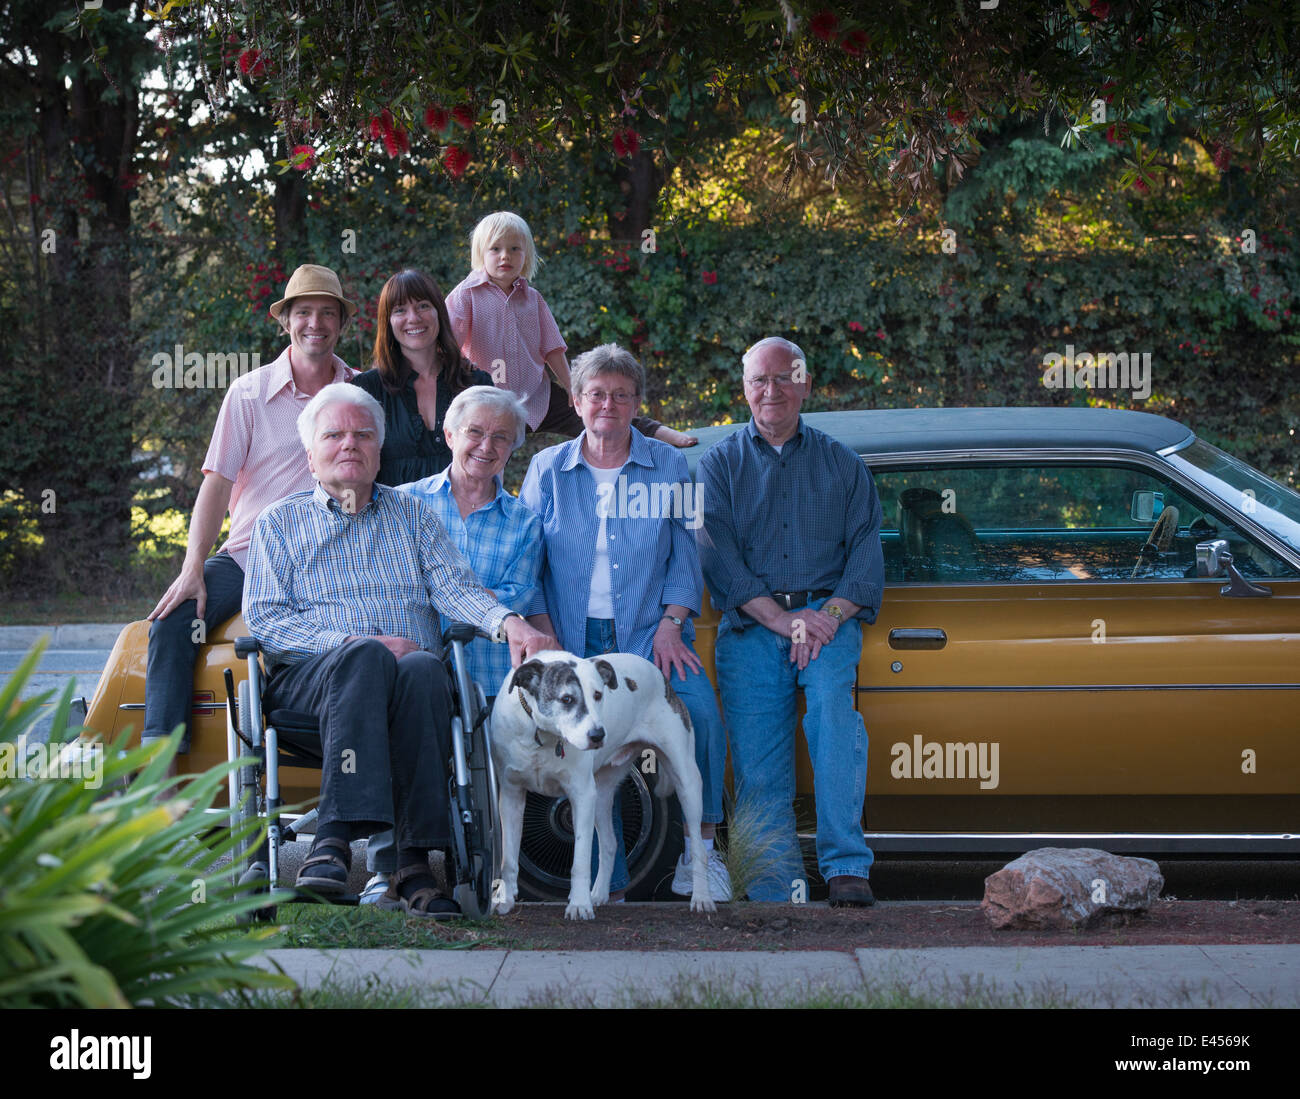 Family portrait with dog Photo Stock